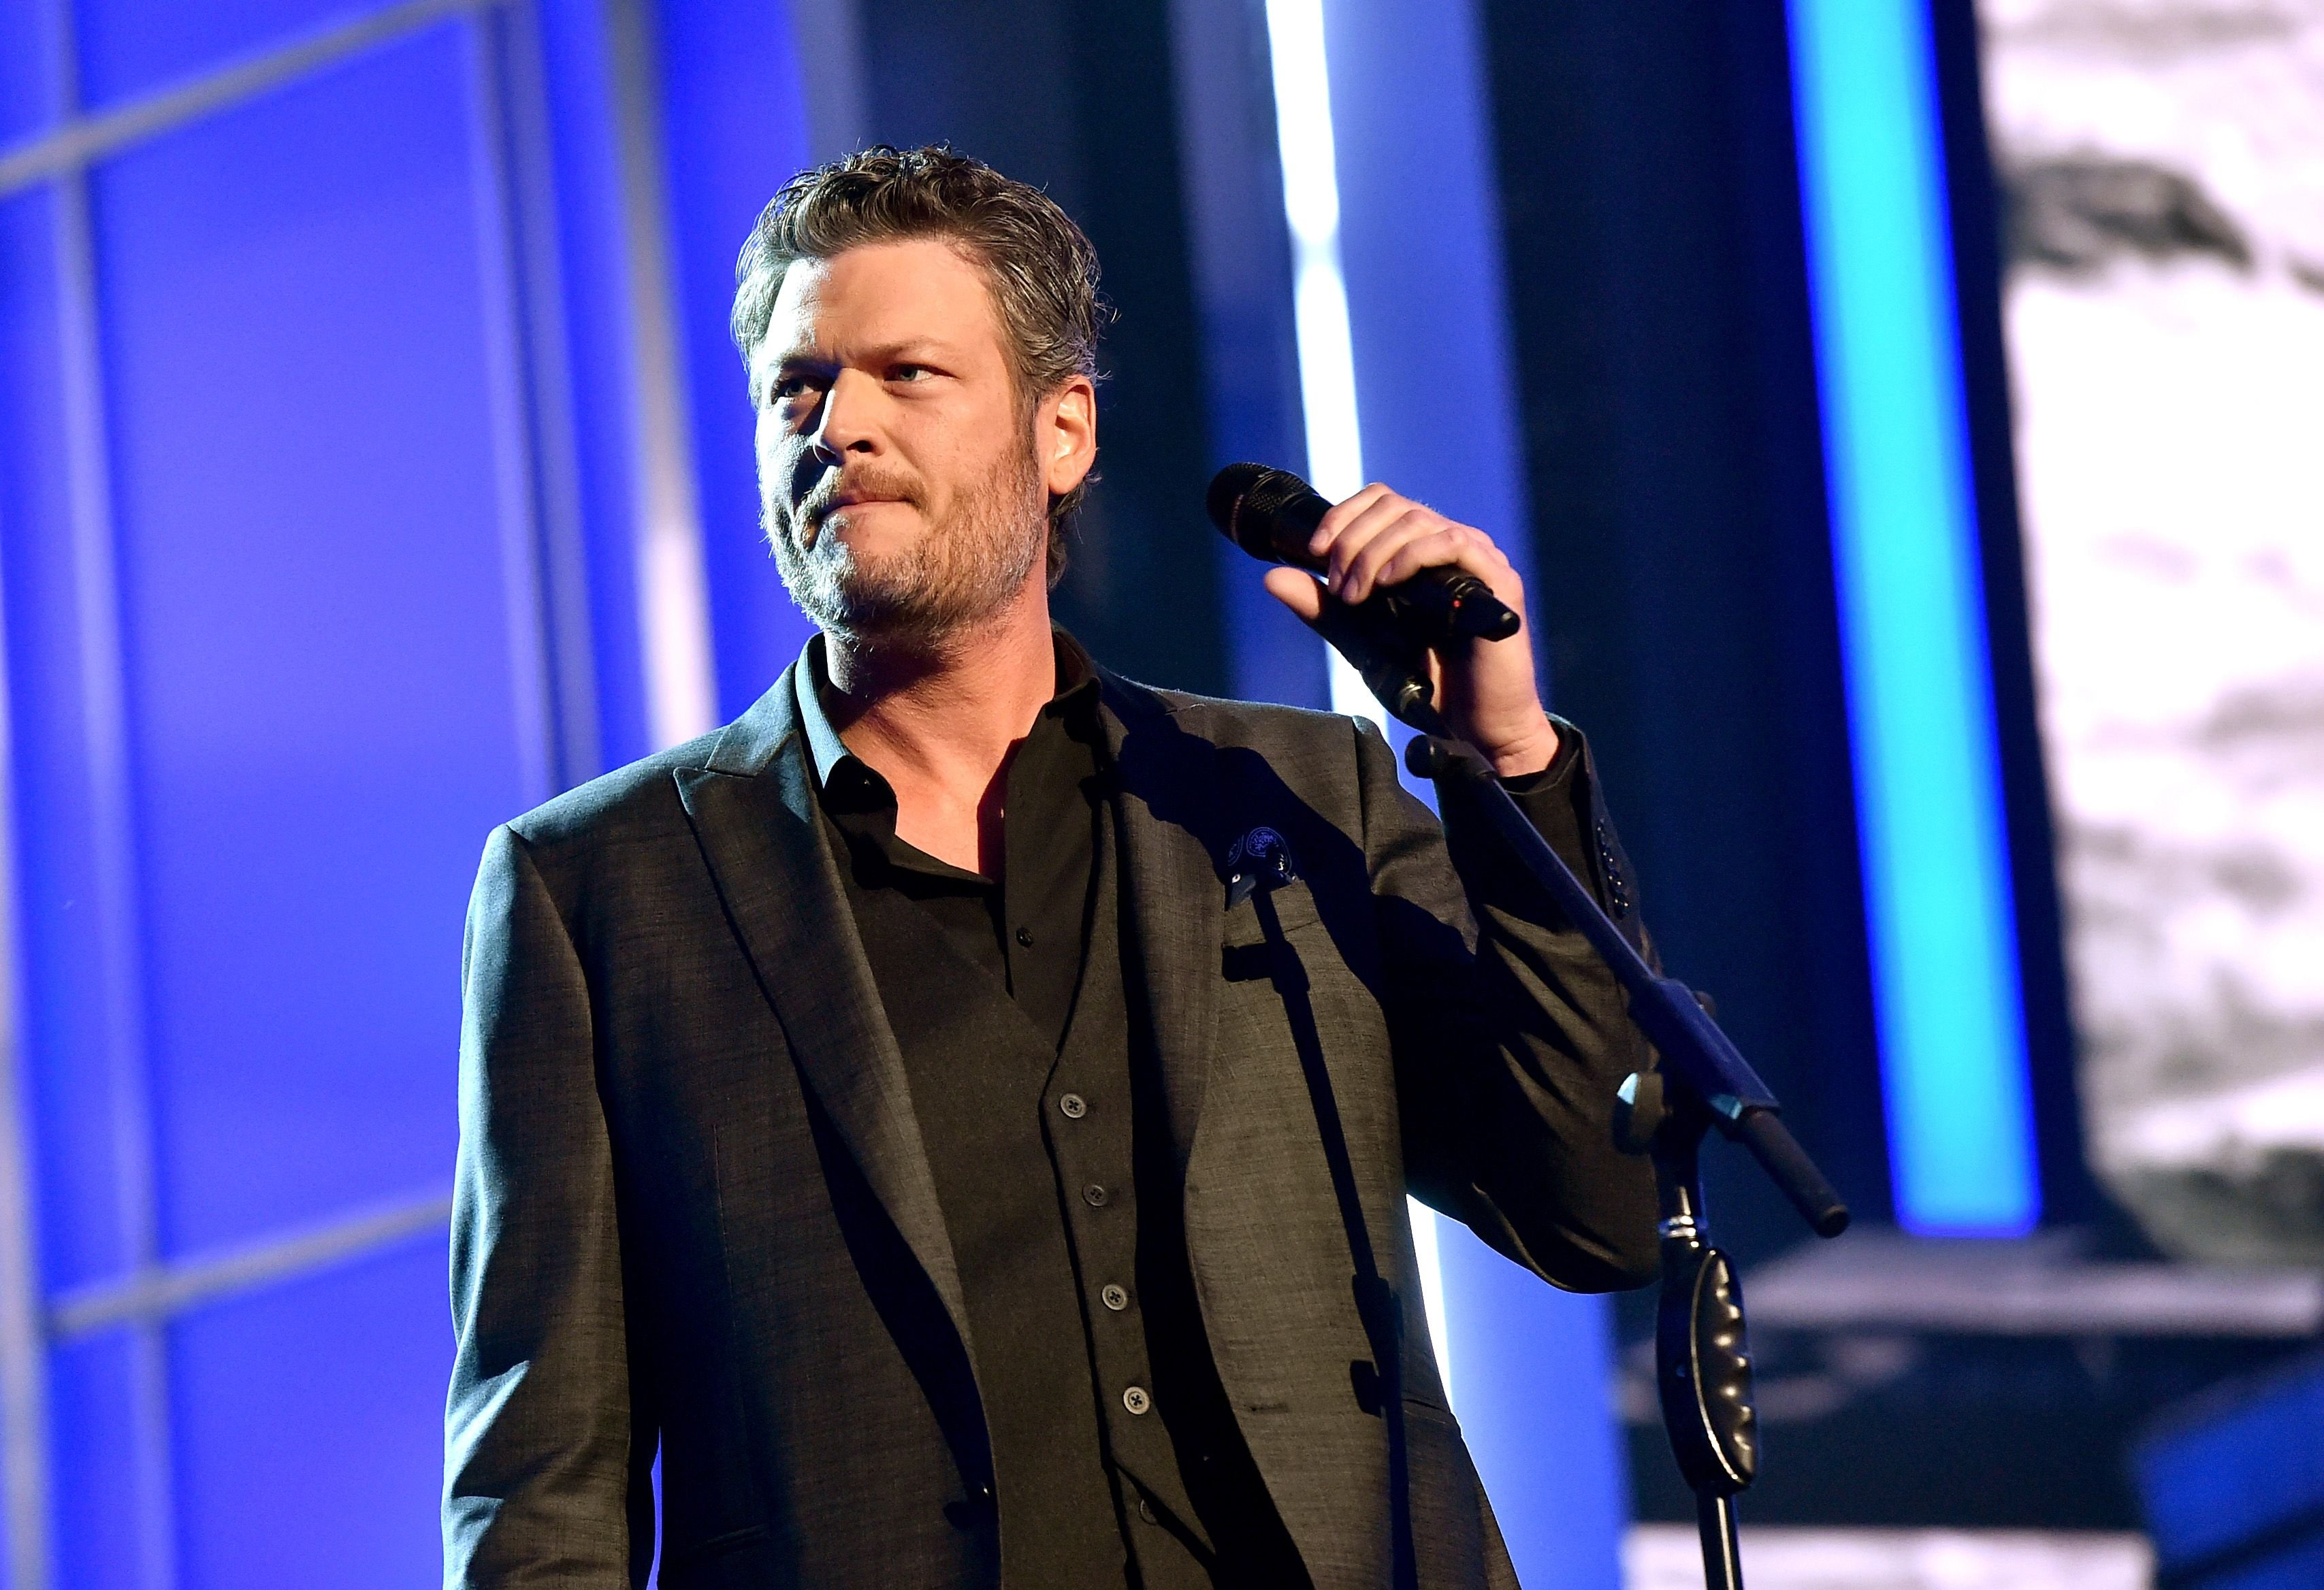 Blake Shelton performs onstage during the 51st Academy of Country Music Awards on April 3, 2016, in Las Vegas, Nevada   Photo: Kevin Winter/ACM2016/Getty Images